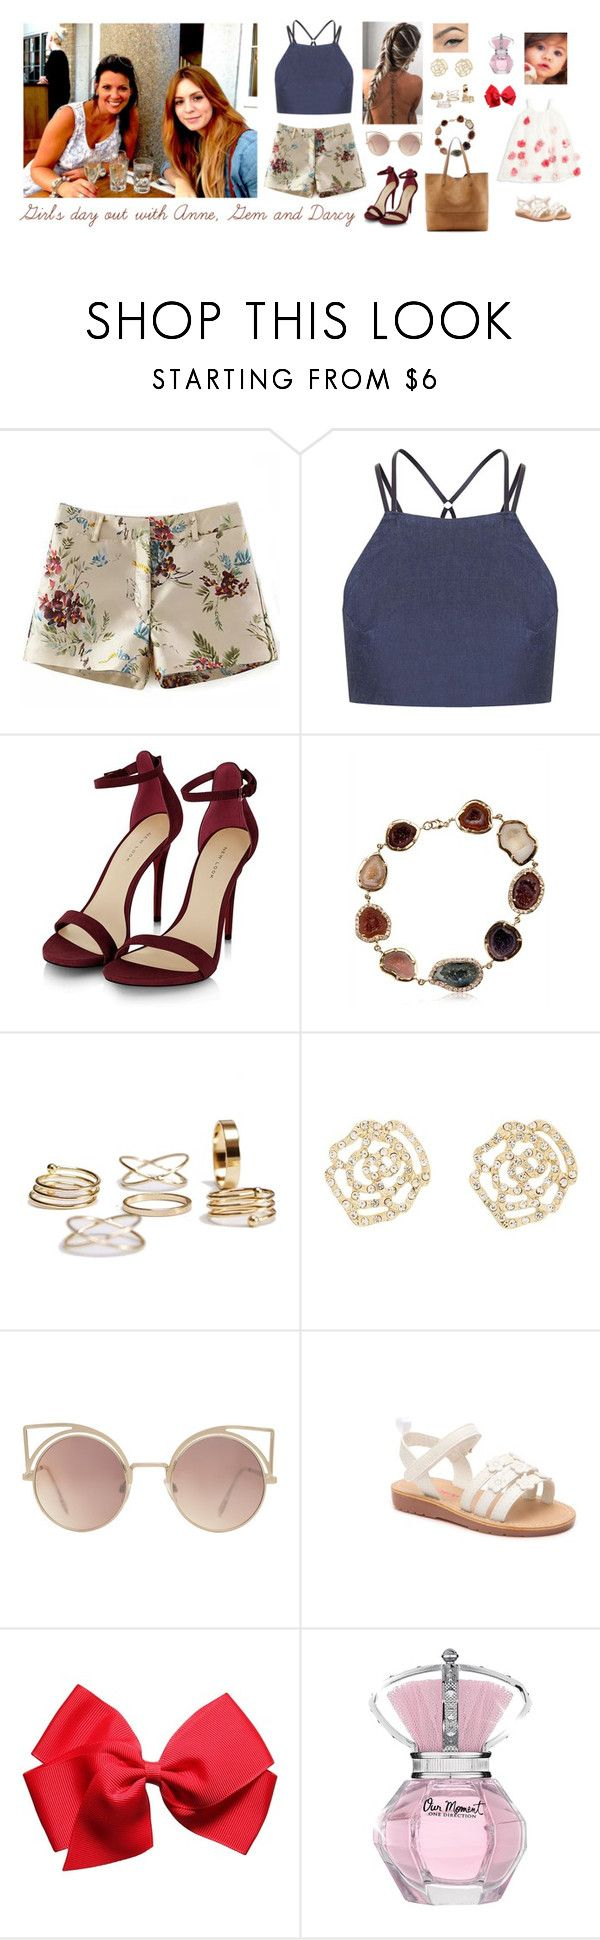 """""""Girl's day out with Anne, Gem and Darcy"""" by hazzabum ❤ liked on Polyvore featuring Topshop, Kimberly McDonald, Charlotte Russe, MANGO, Halabaloo, Carter's, Sole Society, harrystyles, dayout and darcy"""